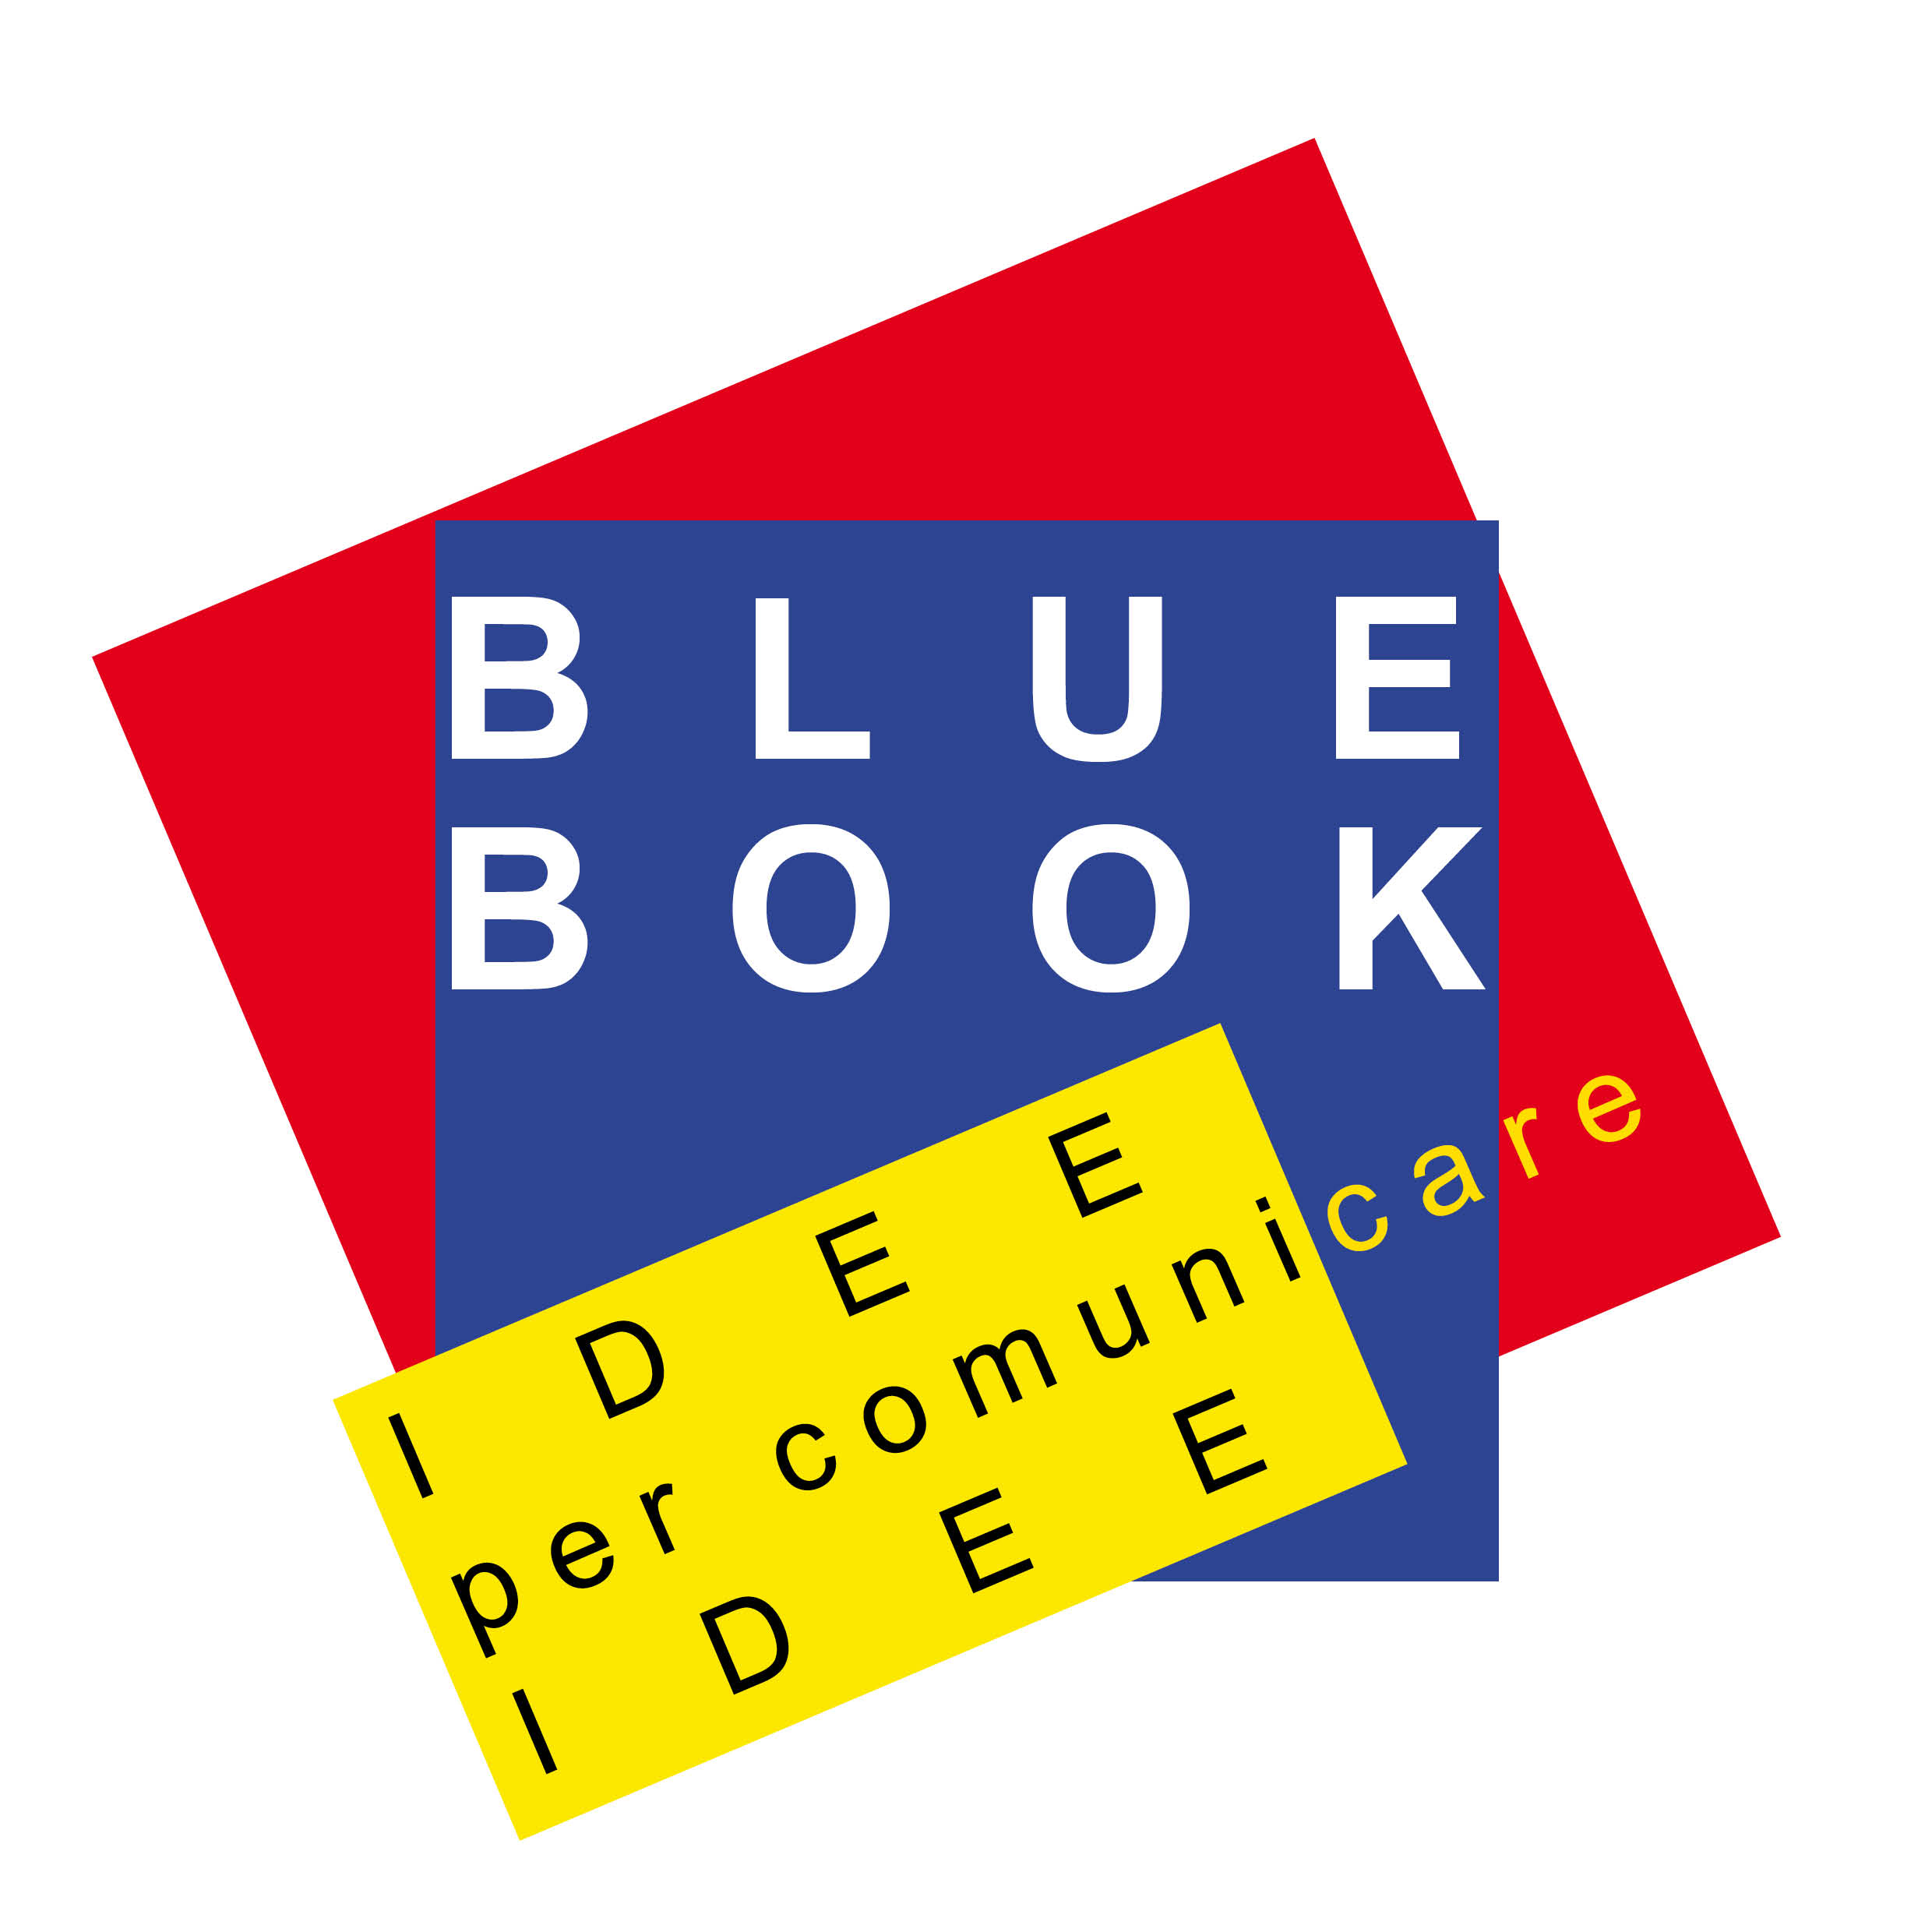 Bluebook s.r.l. logo